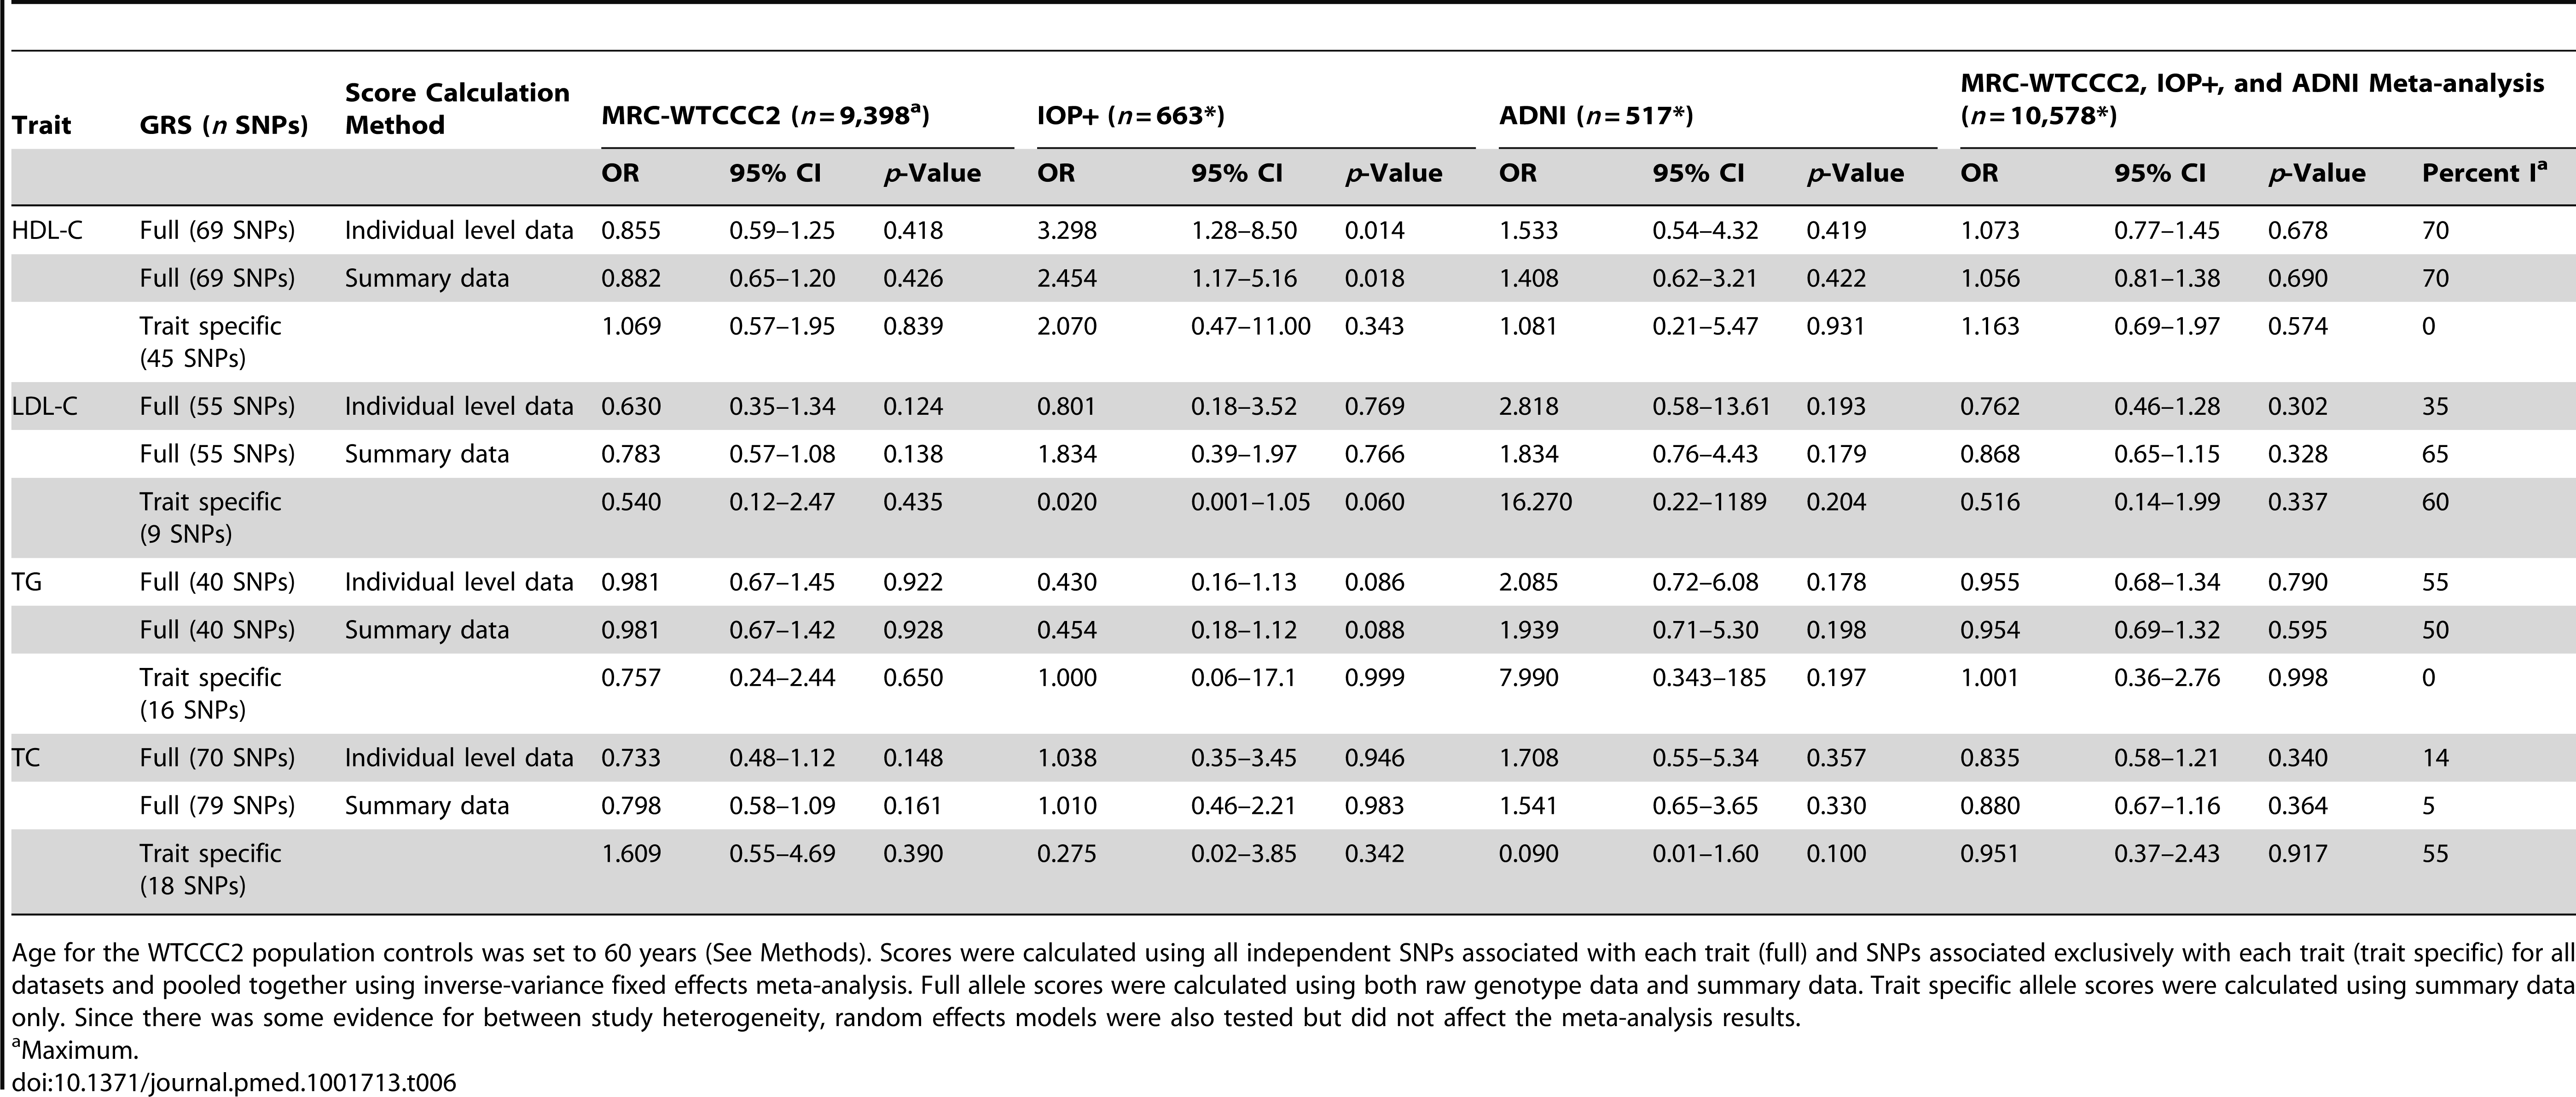 Association of lipid genotype risk scores with LOAD per one unit increase in lipid levels after controlling for age at baseline visit, number of APOE e4 alleles, and gender.